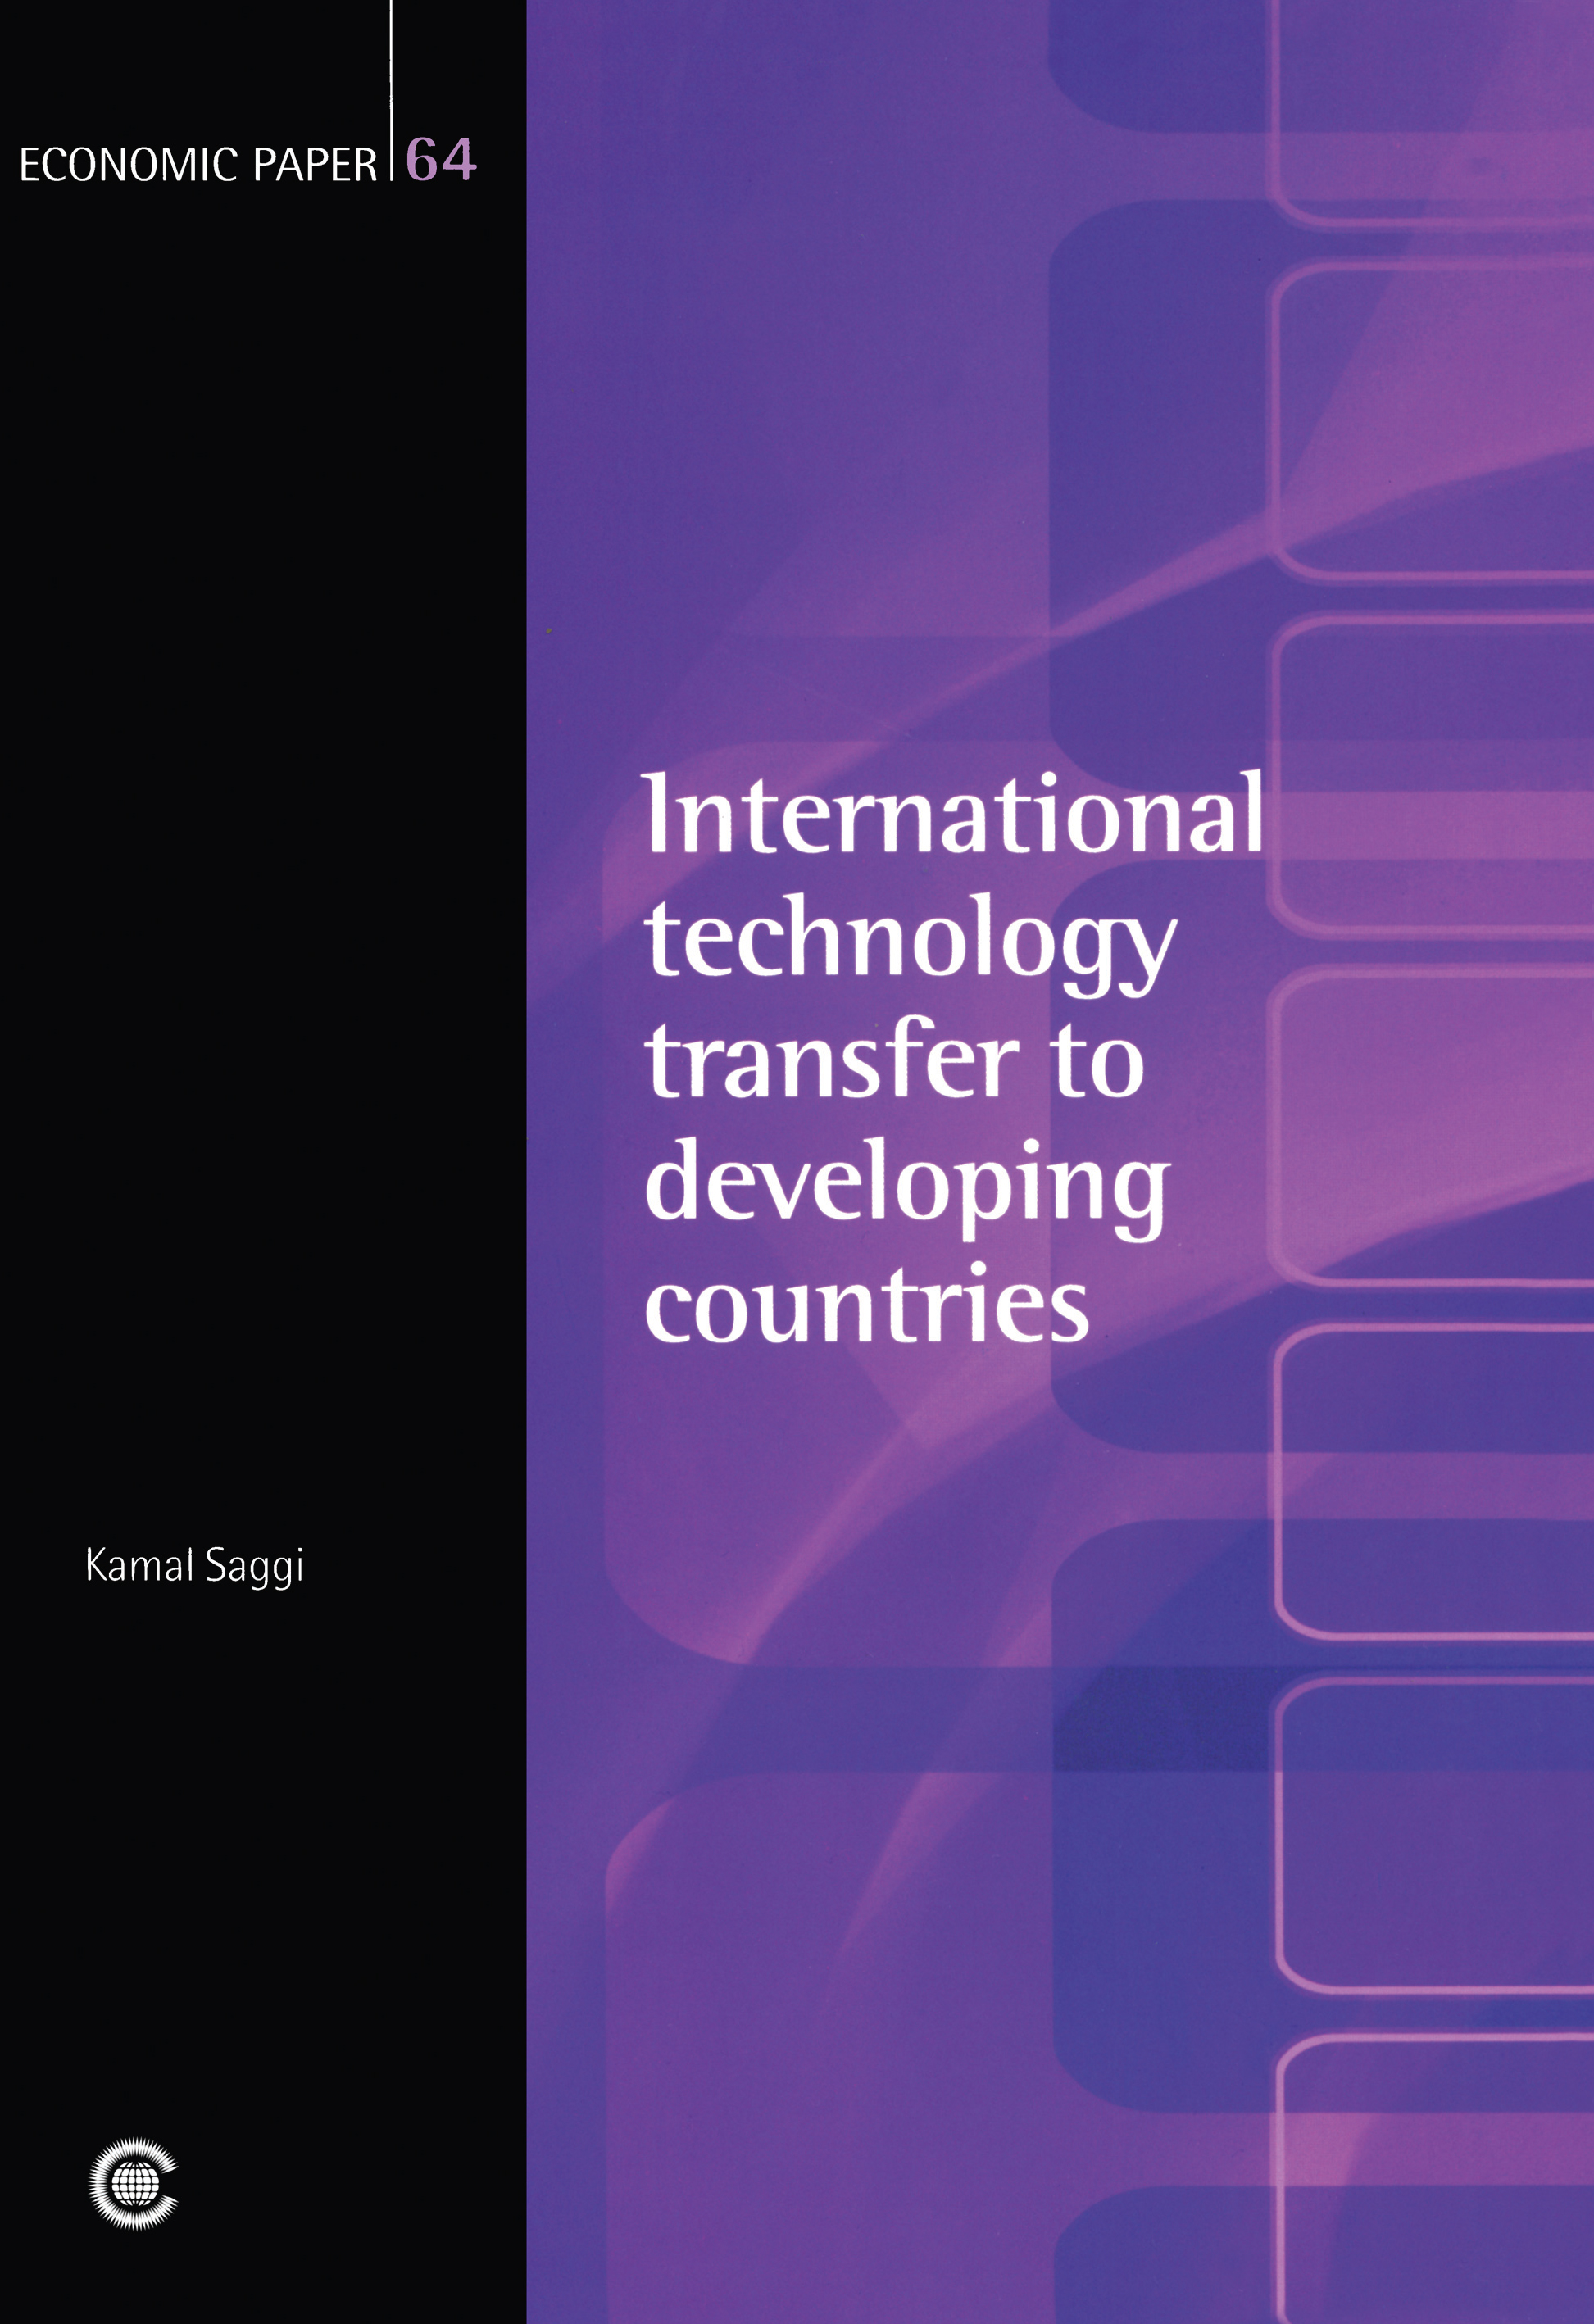 the role of technology in international trade Advantages of technology in international trade technology plays a major role in international trade databases, overnight delivery and faxes have opened the world market to not only larger companies but small ones too.